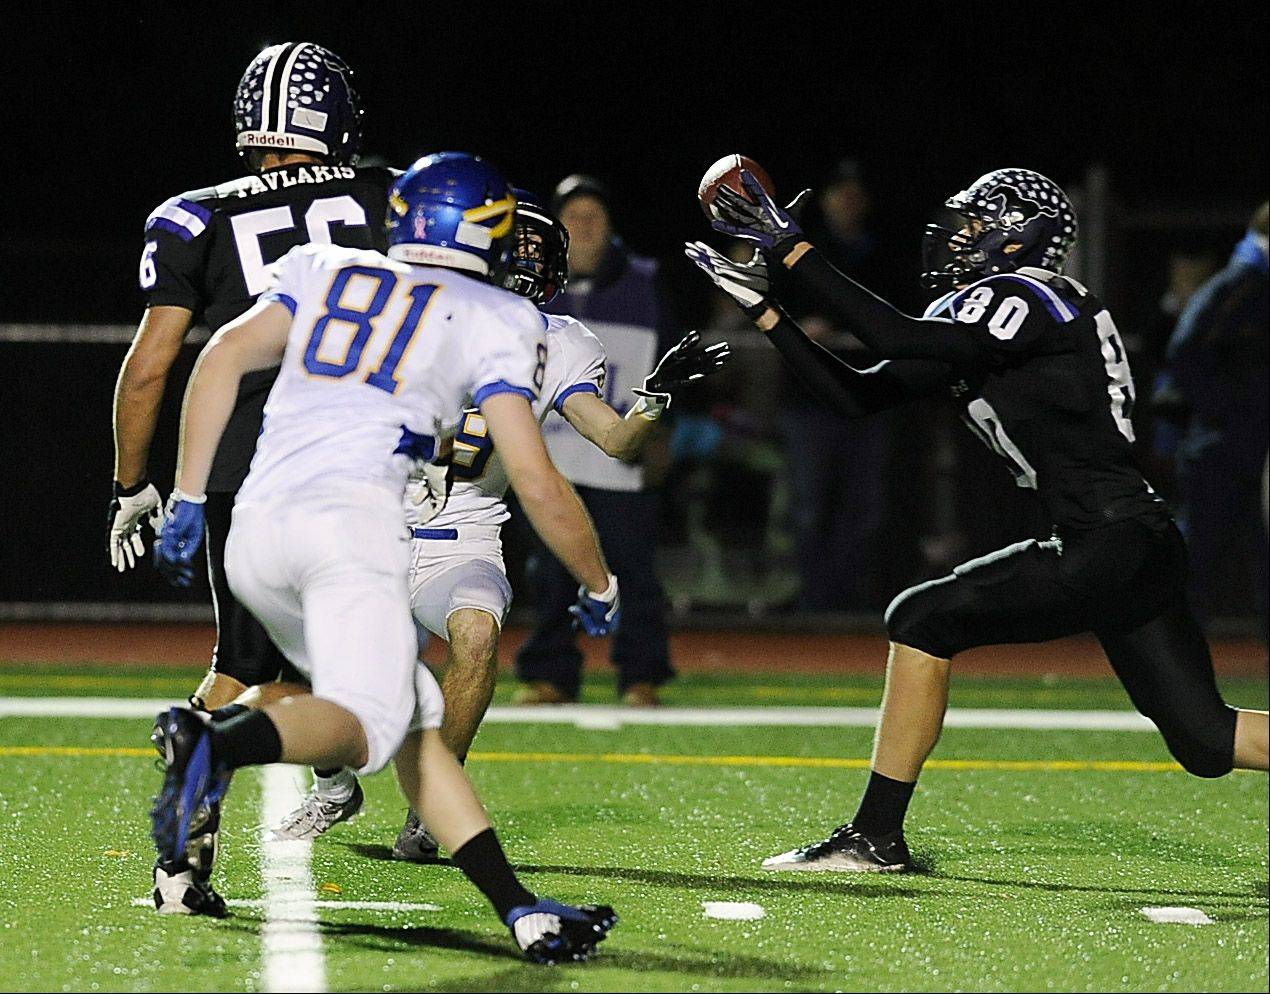 Matt Dolan, here making an interception against Lake Forest in last fall's Class 6A playoffs, is one of many battle-tested players back in action for Rolling Meadows.